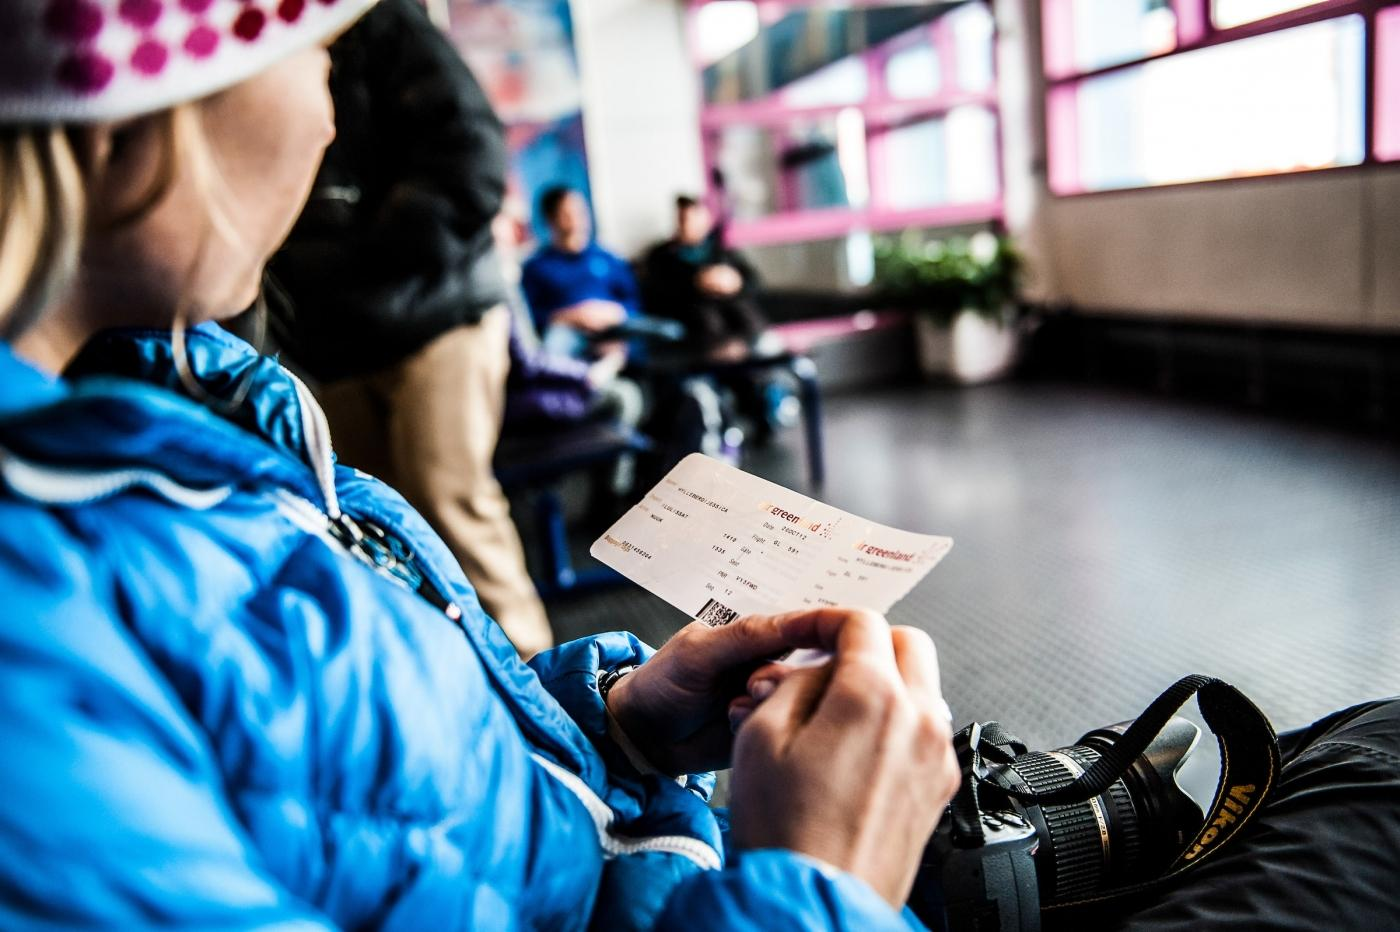 A traveler waiting to board a plane from Ilulissat in Greenland.